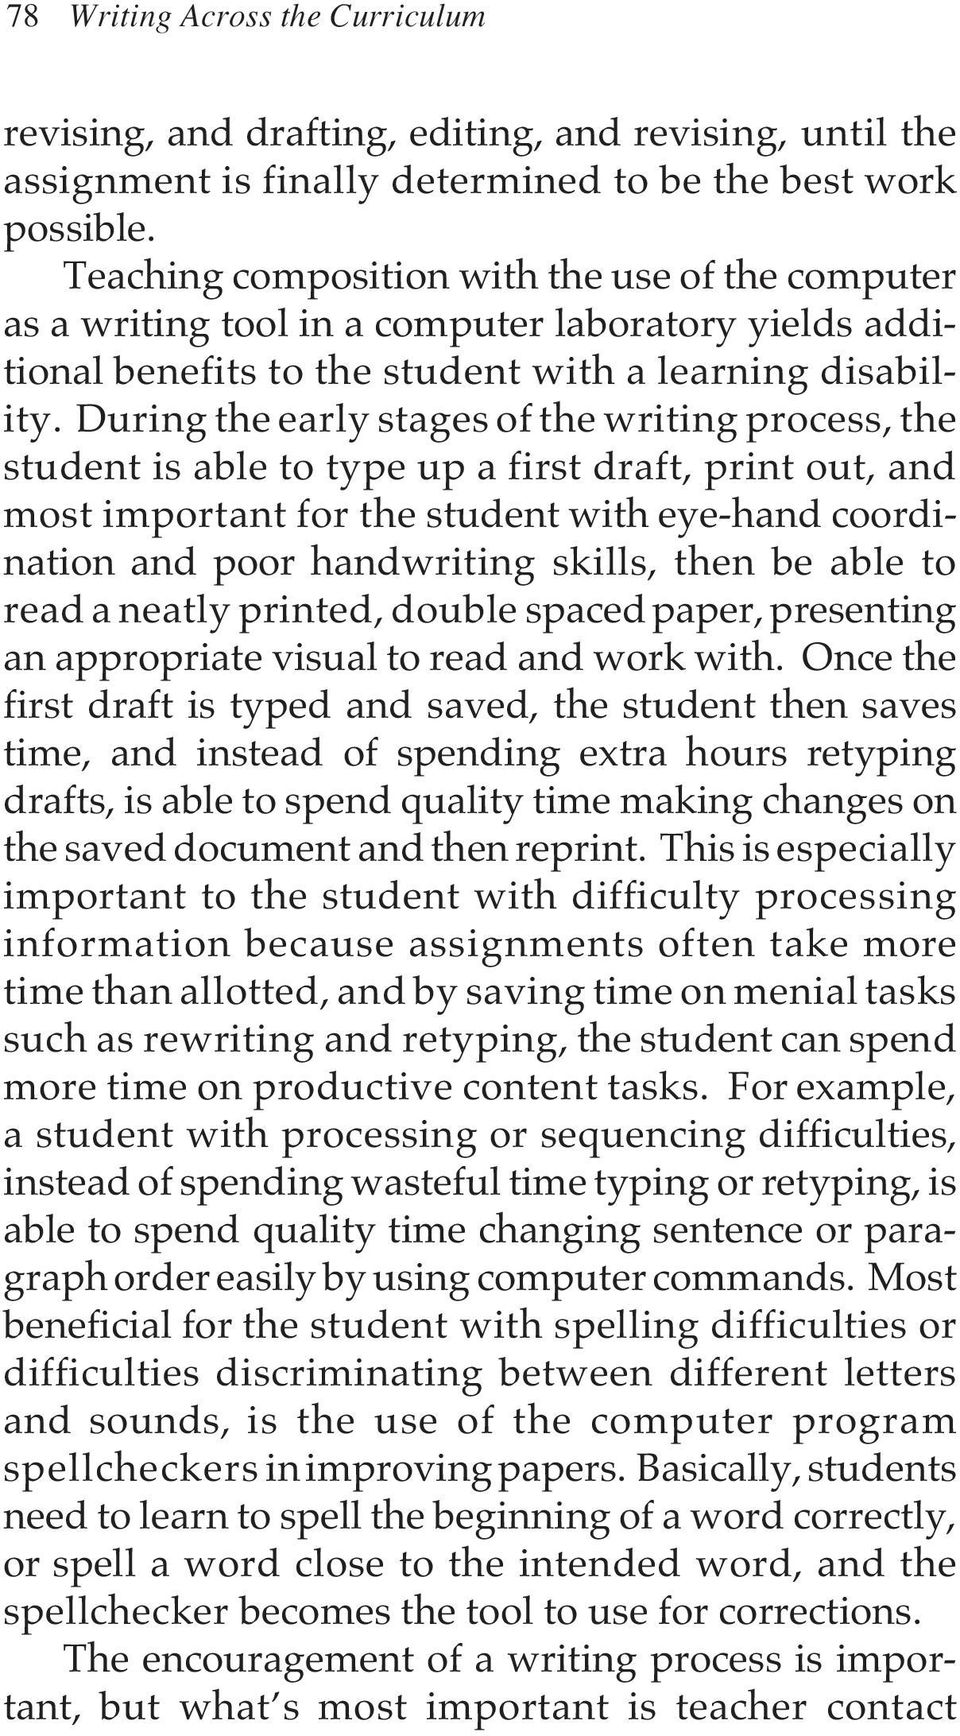 During the early stages of the writing process, the student is able to type up a first draft, print out, and most important for the student with eye-hand coordination and poor handwriting skills,